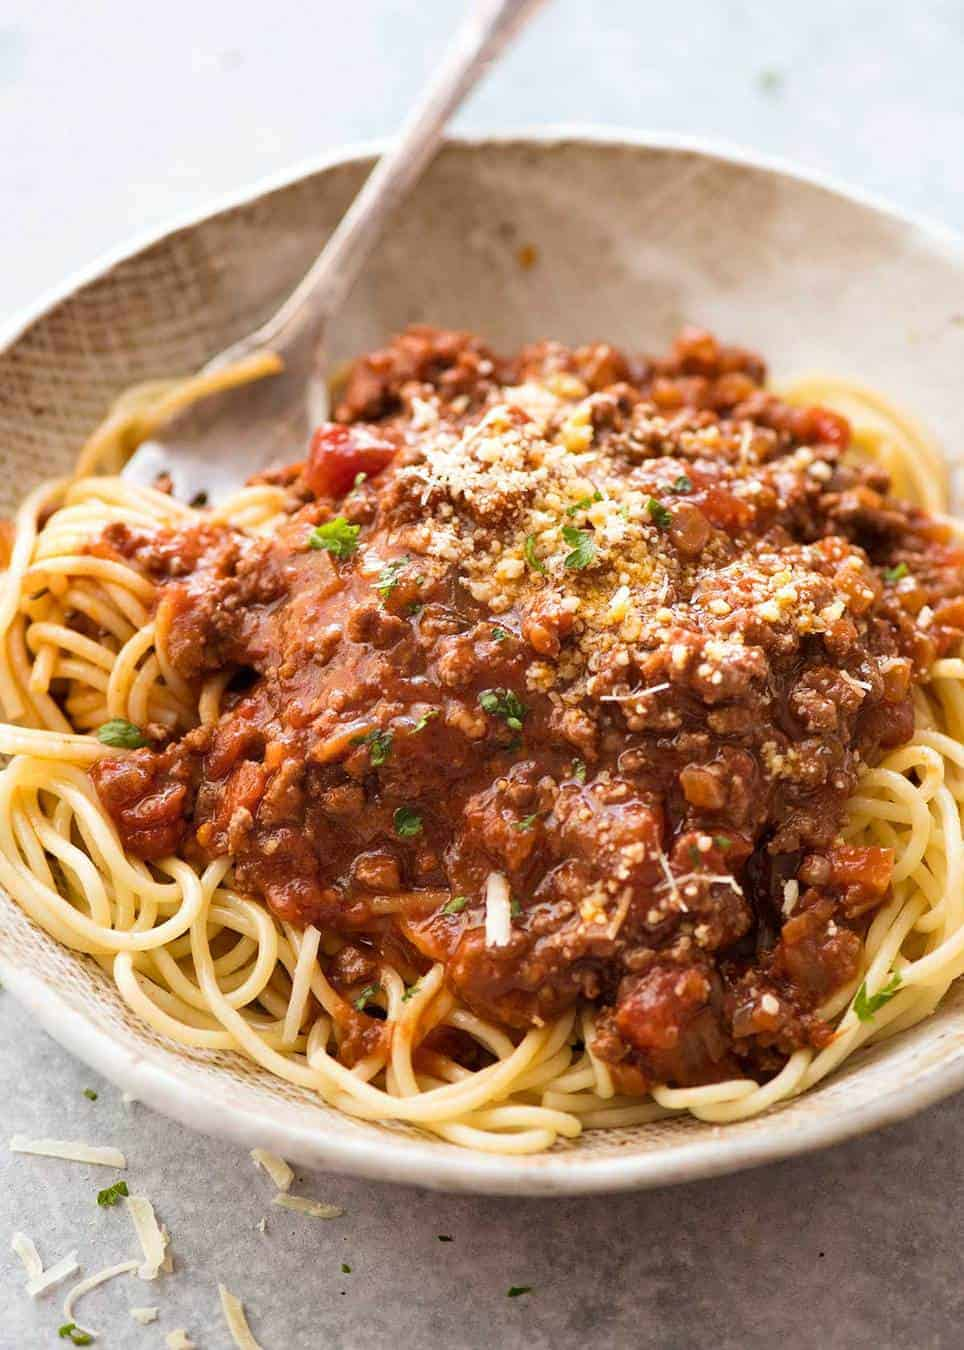 Spaghetti Bolognese in a rustic bowl, ready to be served.